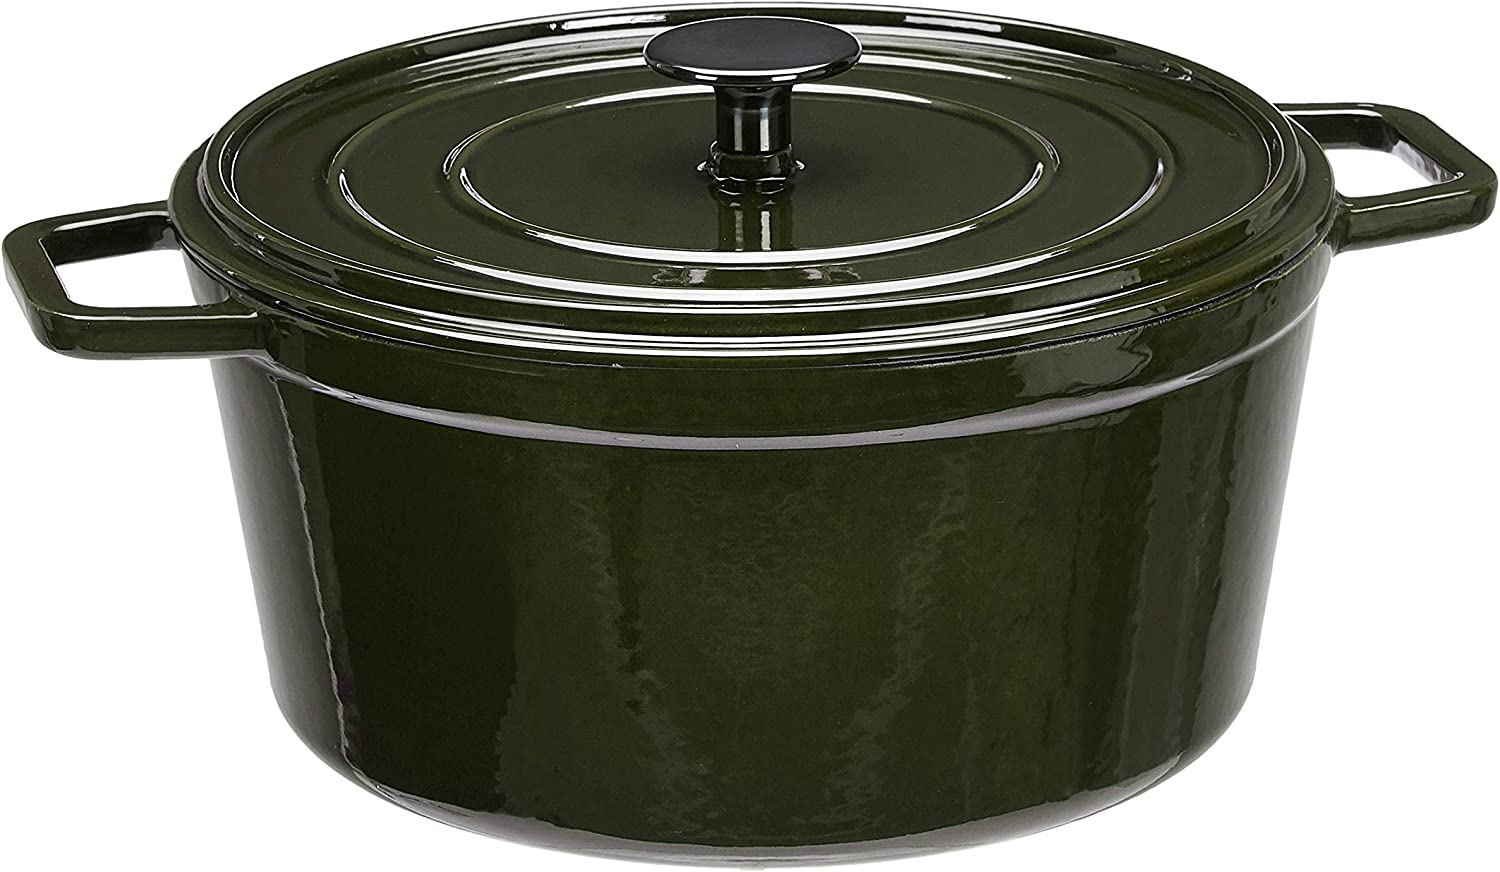 The 10 Best Cast Iron Dutch Oven Green - Your Home Life